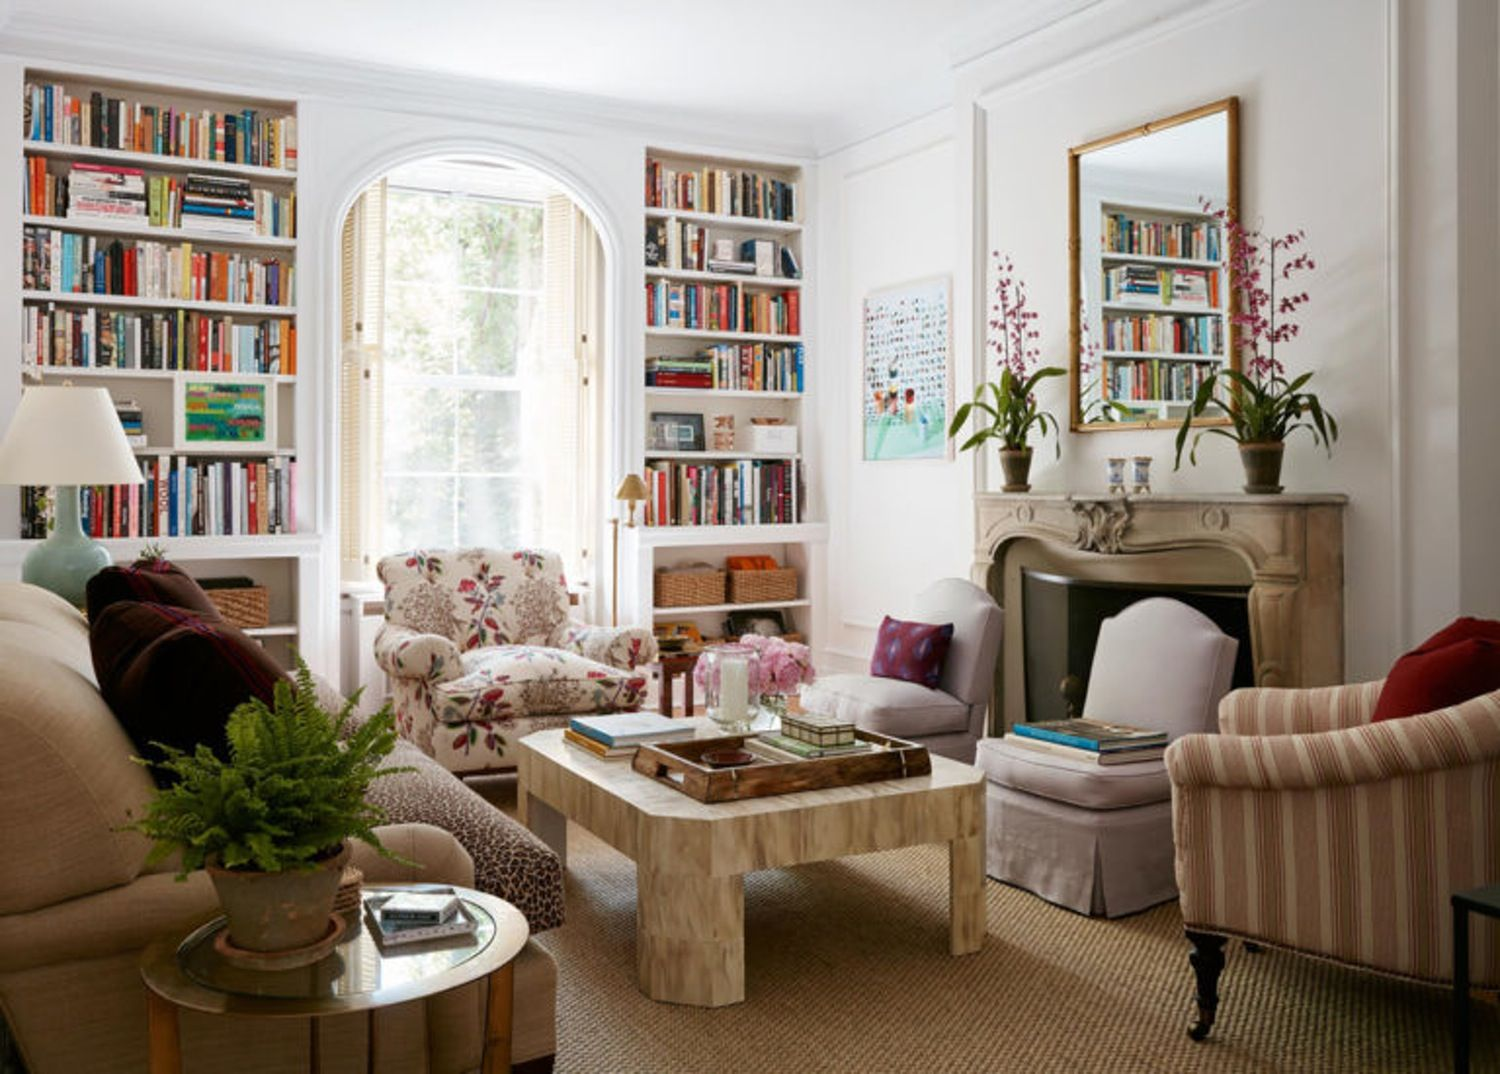 Classic Interiors That Stand the Test of Time: Why They ...